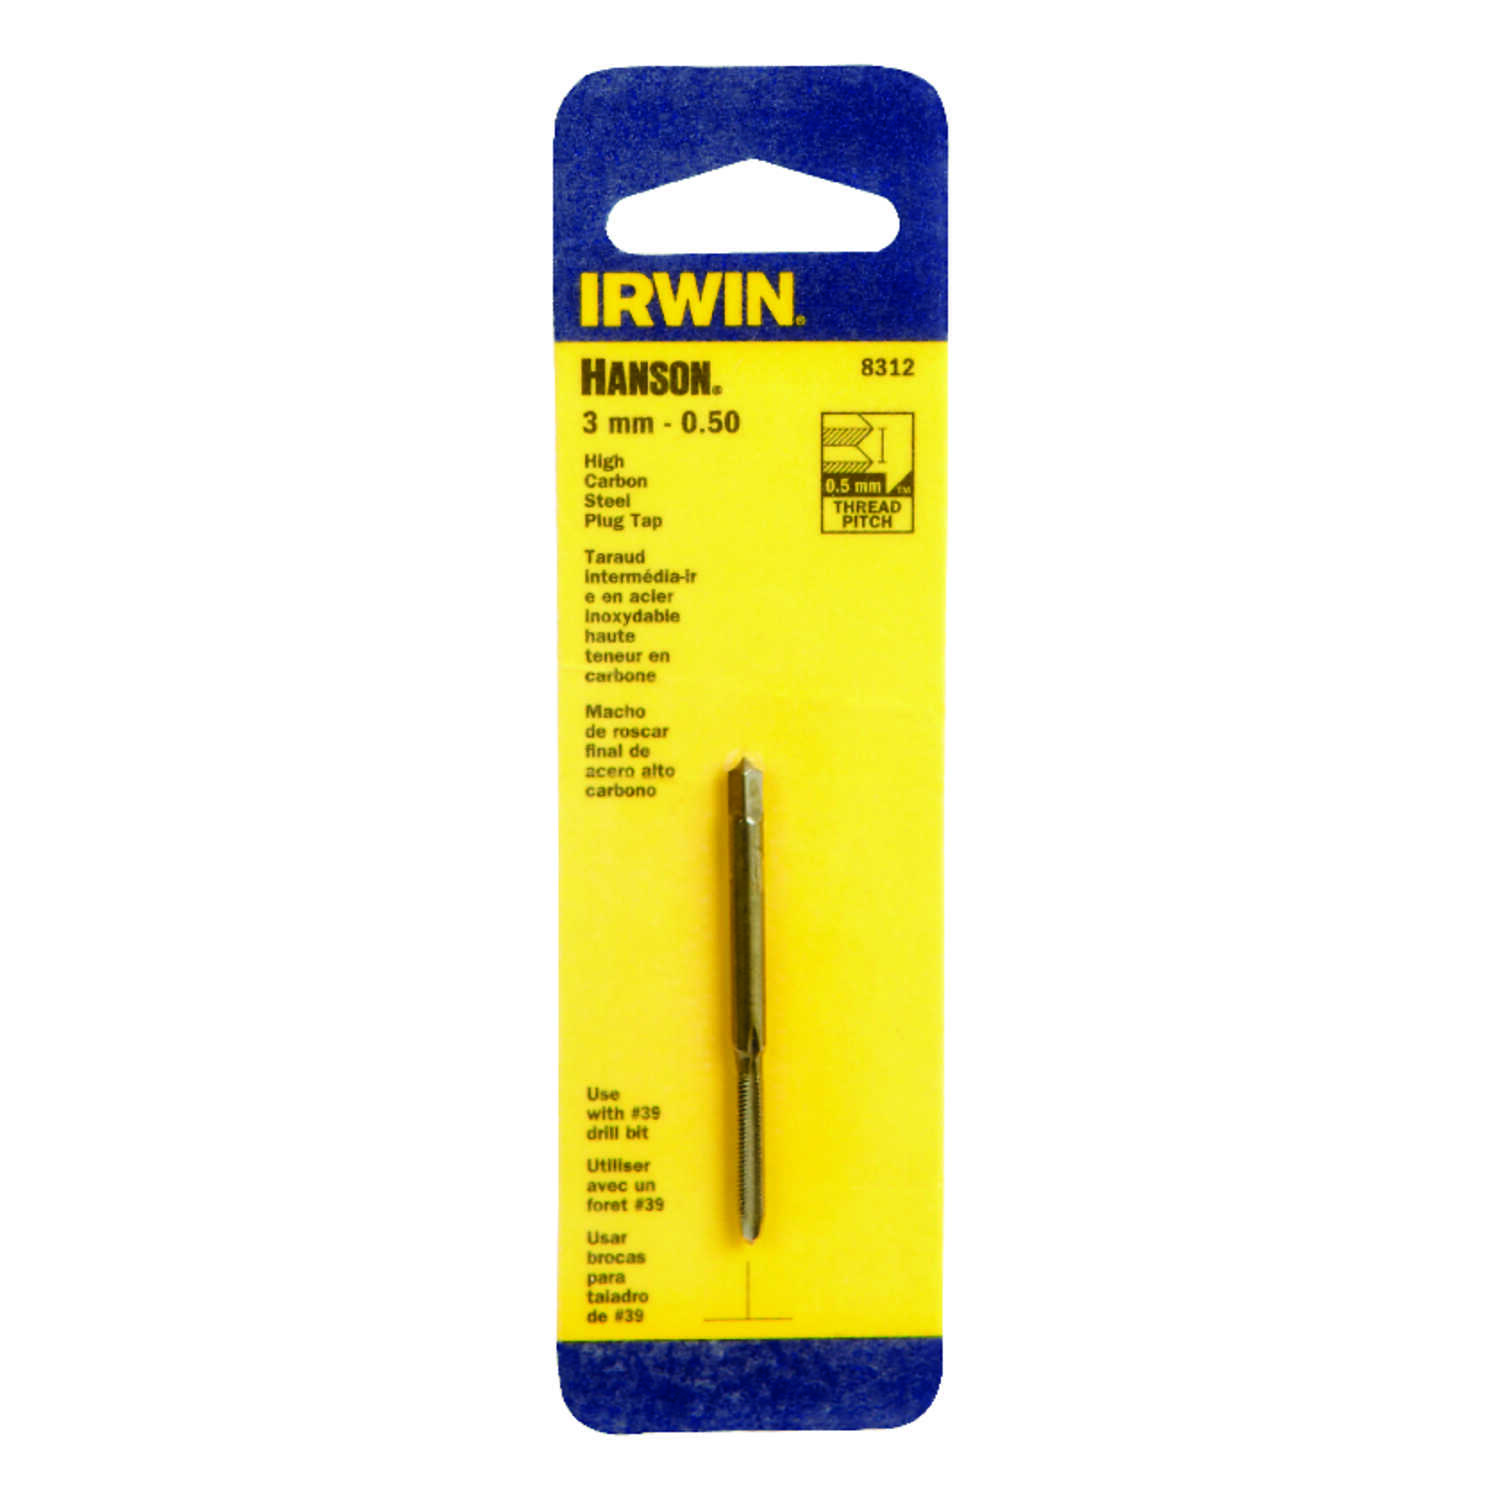 Irwin  Hanson  High Carbon Steel  Metric  Plug Tap  3mm-0.50  1 pc.